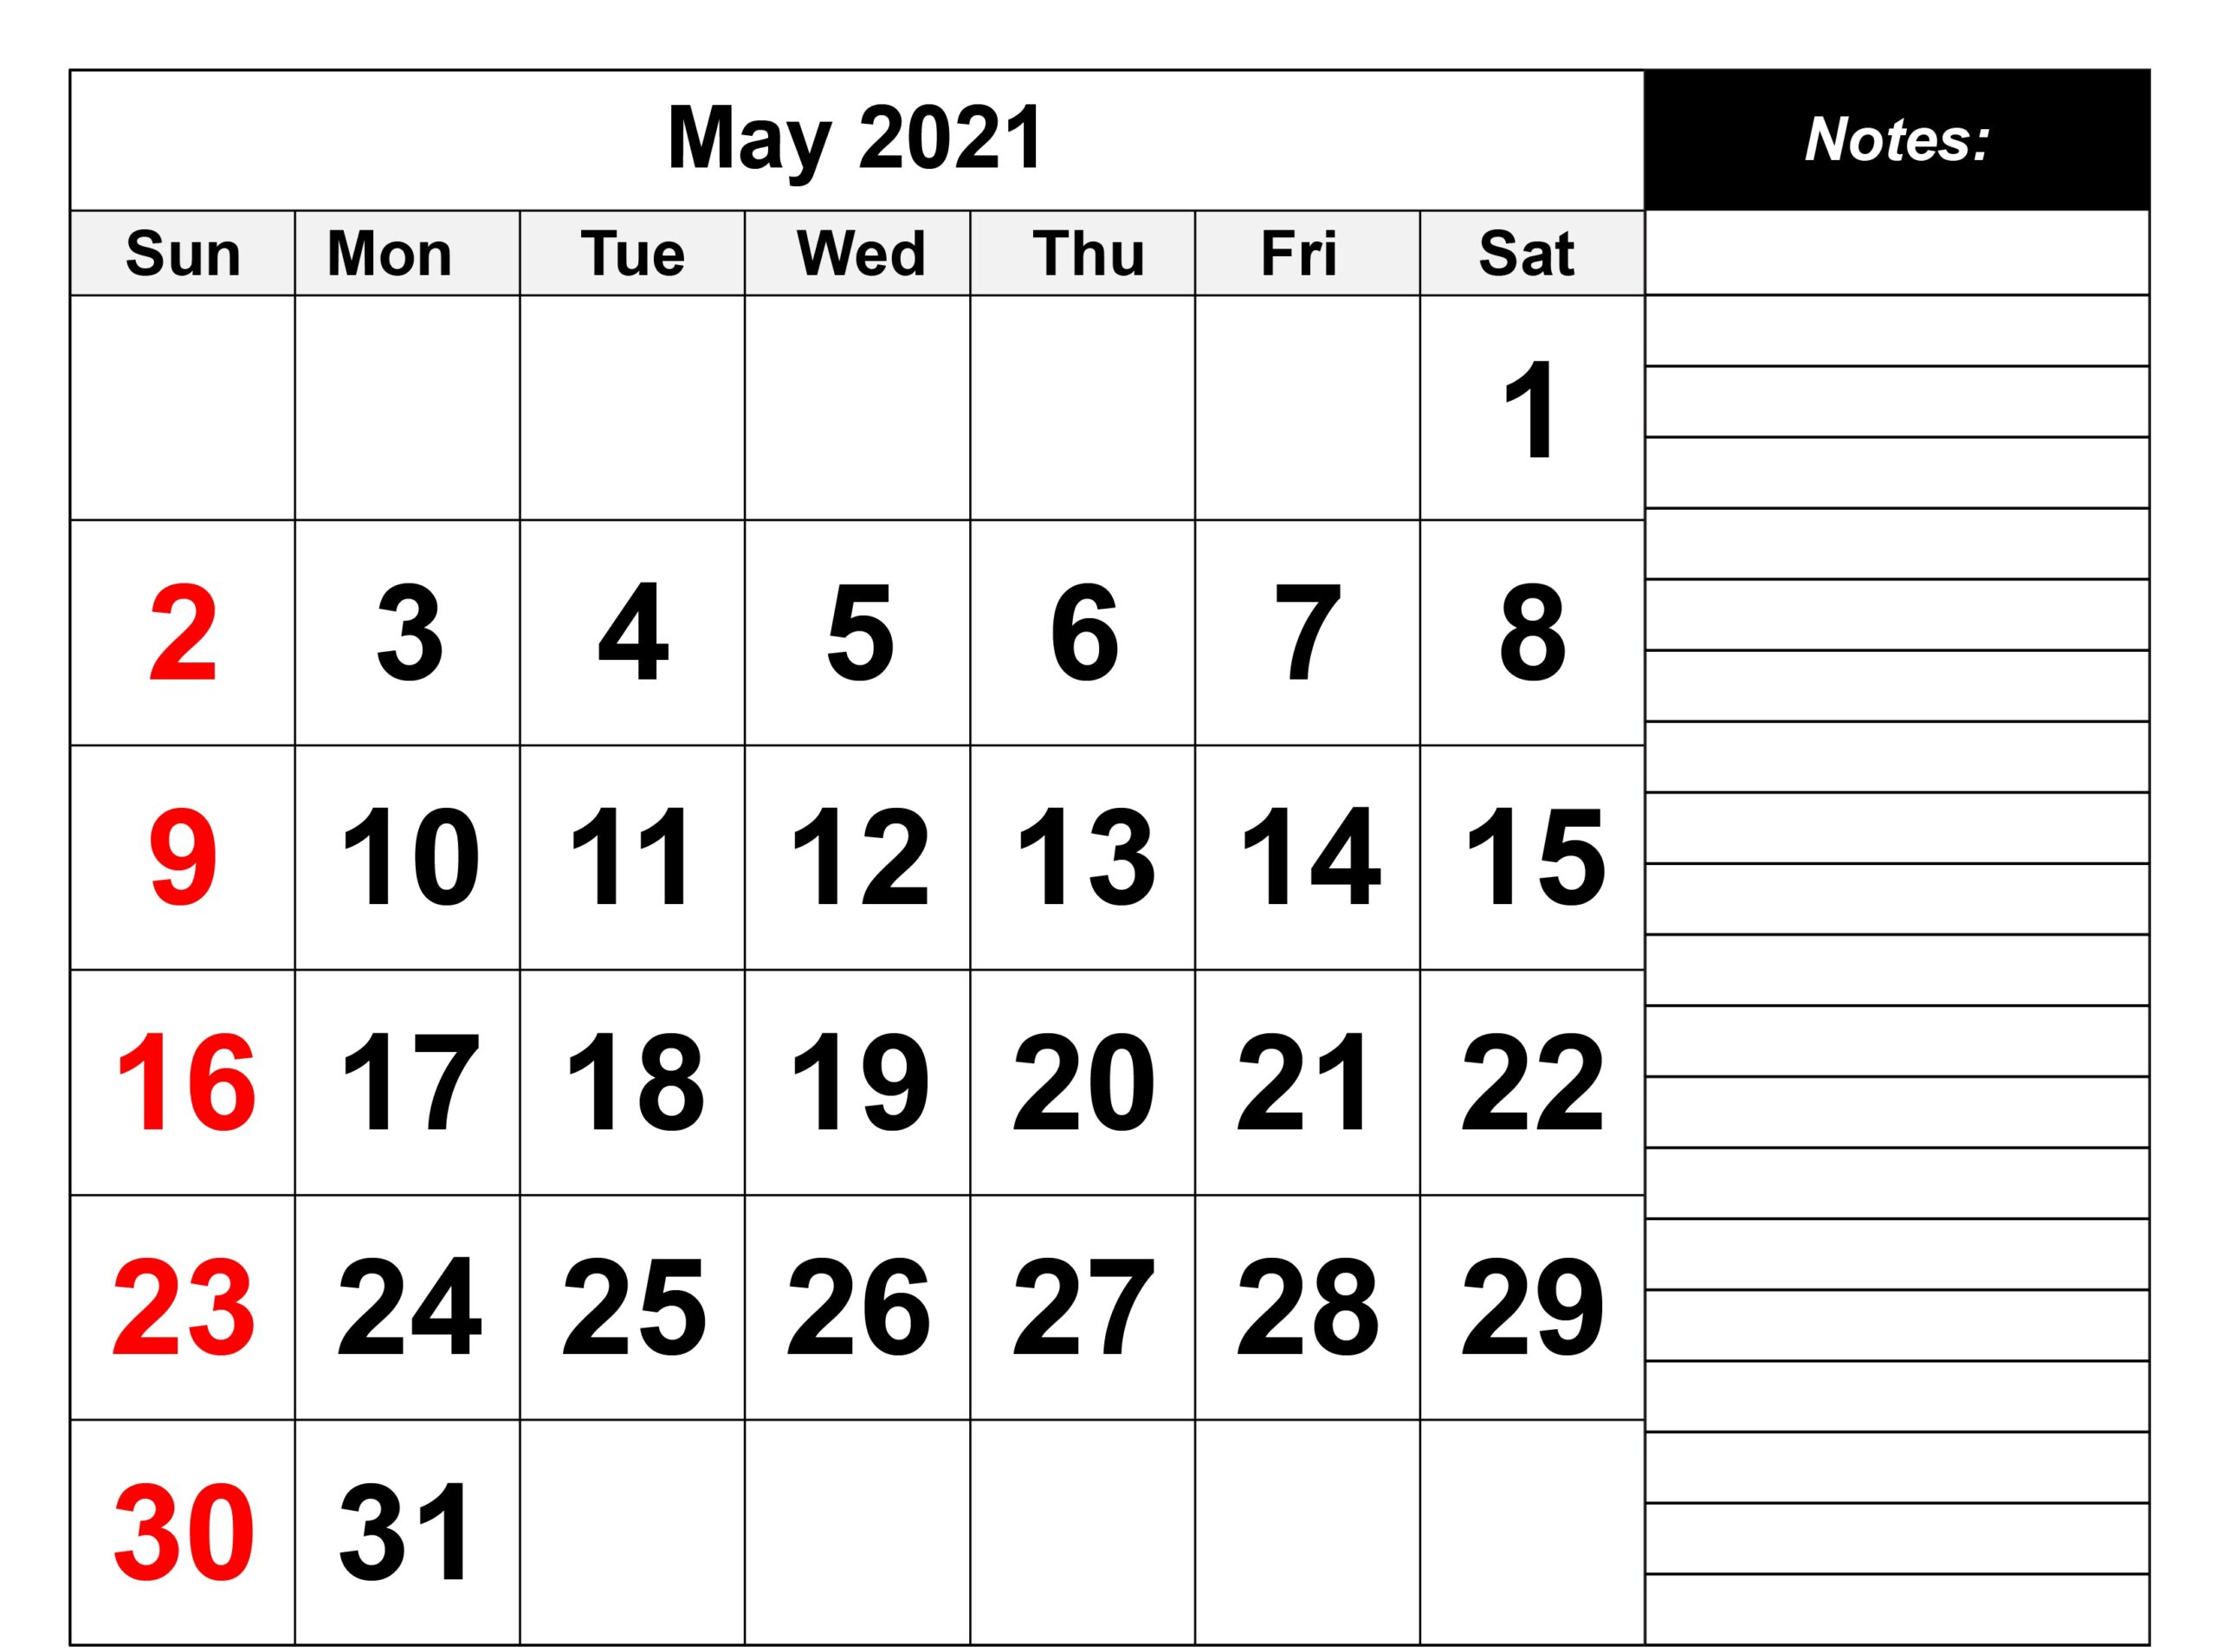 Monthly May 2021 Calendar with Note